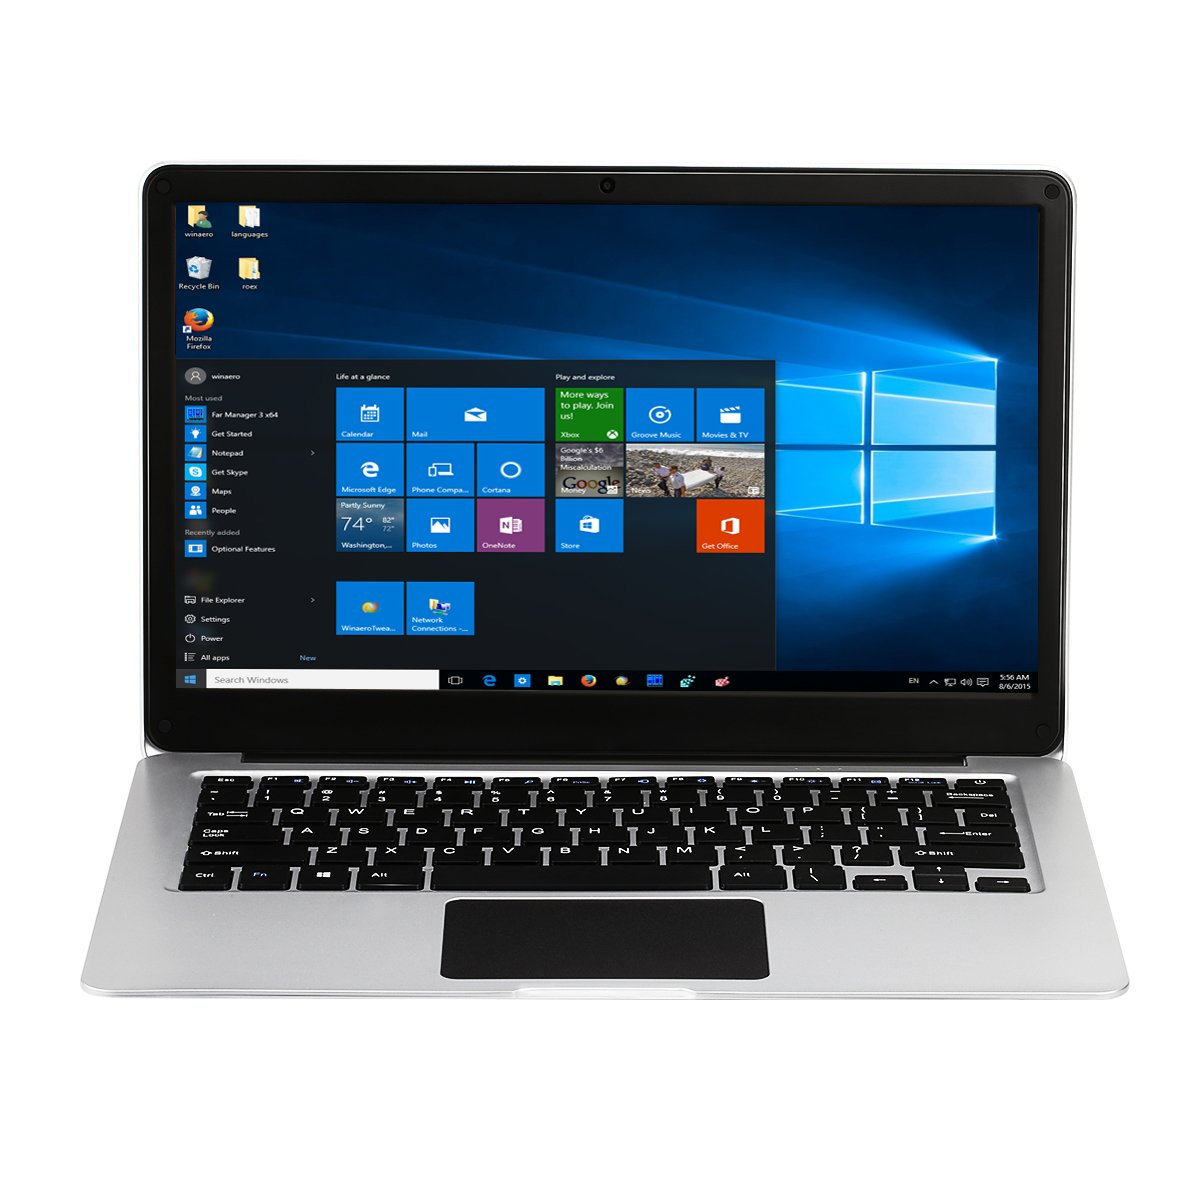 jumper Ezbook 3SE -Portátil DE 13.3 Pulgadas(Windows 10 Home Intel Celeron N3350, 3GB RAM 64GB eMMC, 2.0MP Cámara,FHD 1920 * 1080, Supporto WiFi, ...